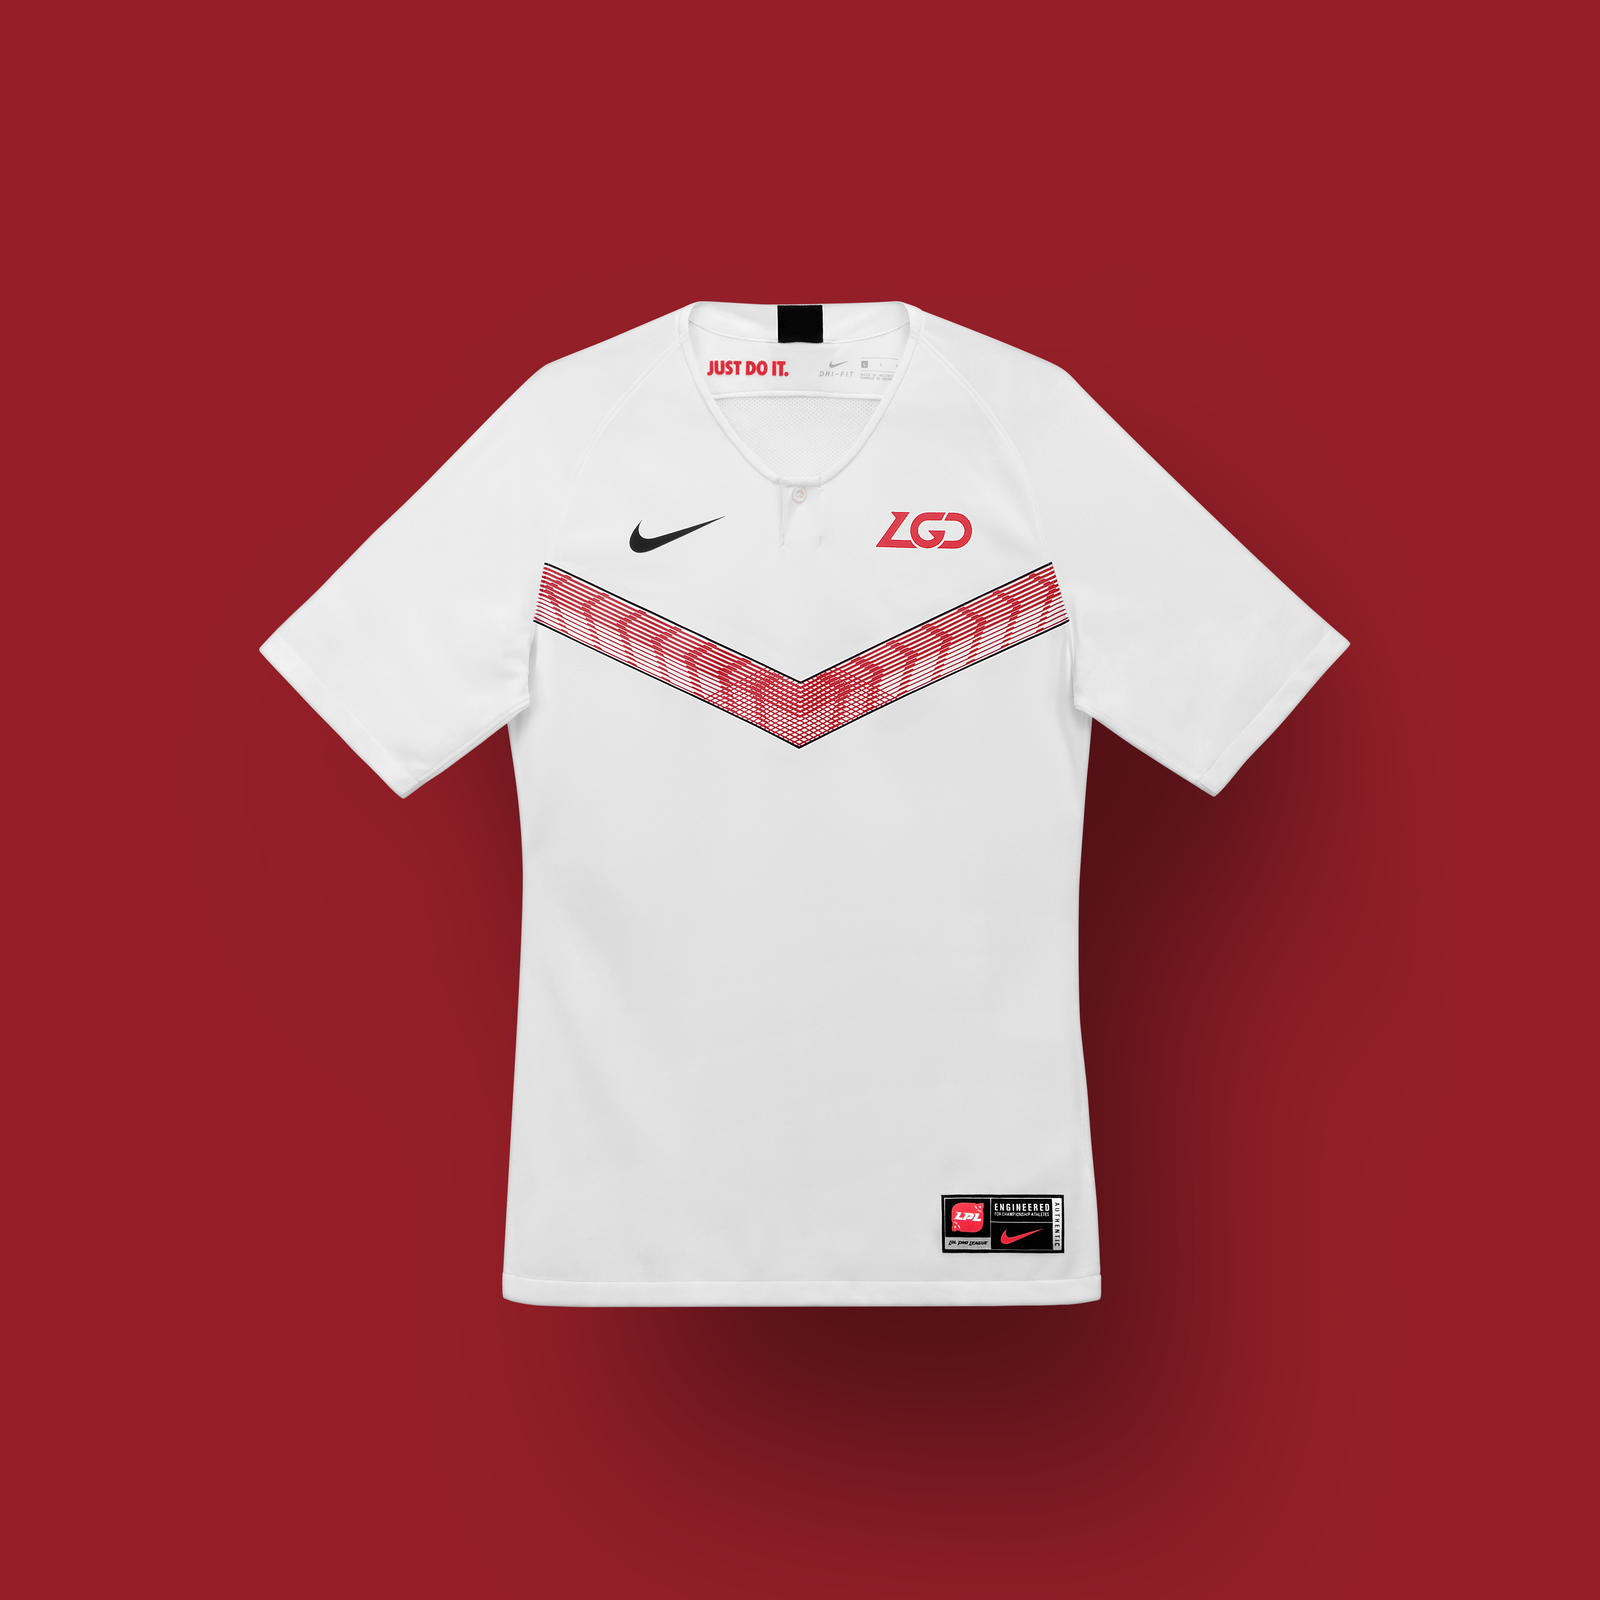 Nike League of Legends Pro League Team Kits 2019-20 Official Images 38